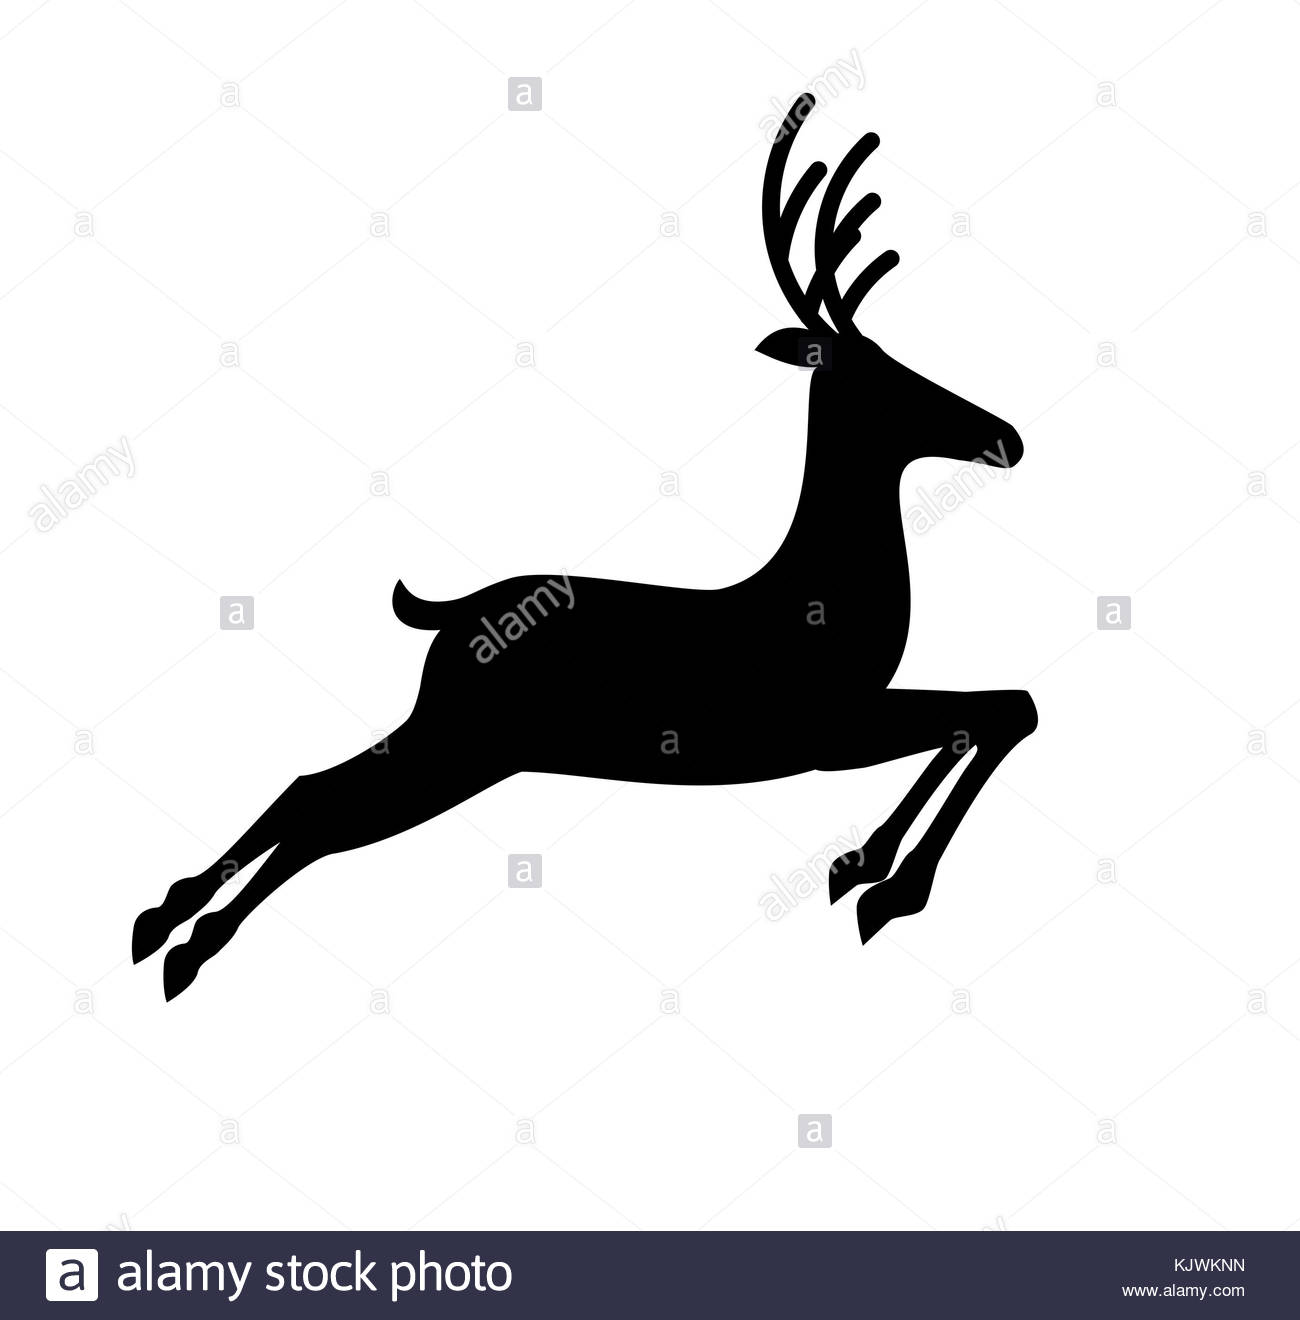 1300x1320 Silhouette Of Deer Running Stock Photos Amp Silhouette Of Deer